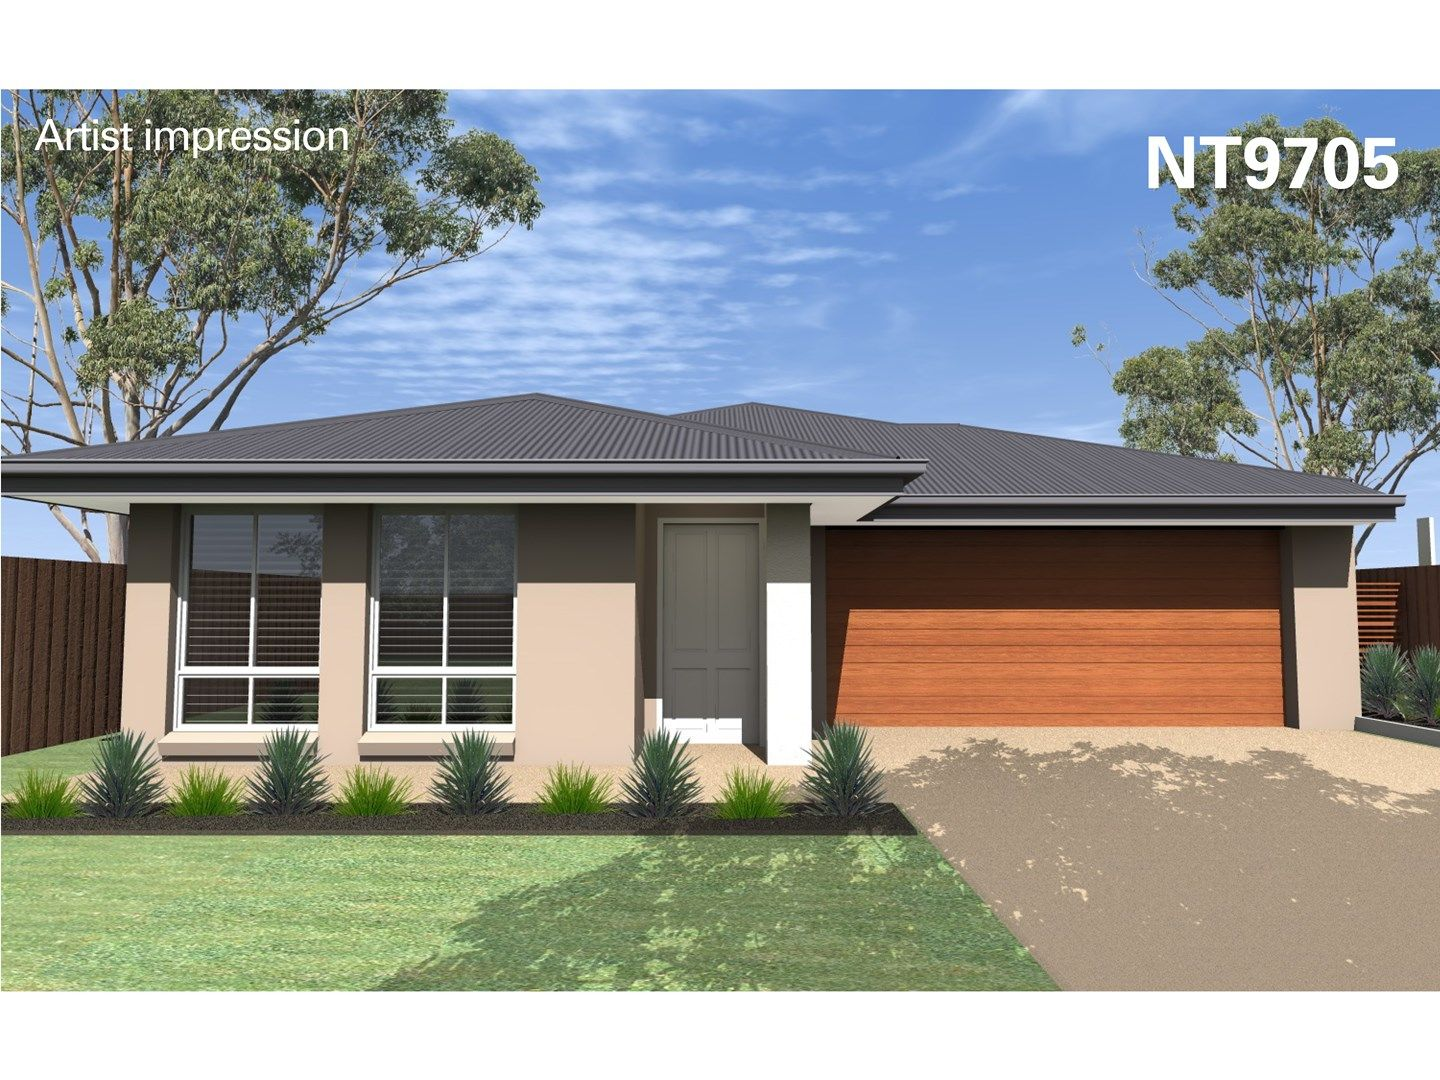 Lot 21 Golf Avenue, Boonah QLD 4310, Image 0